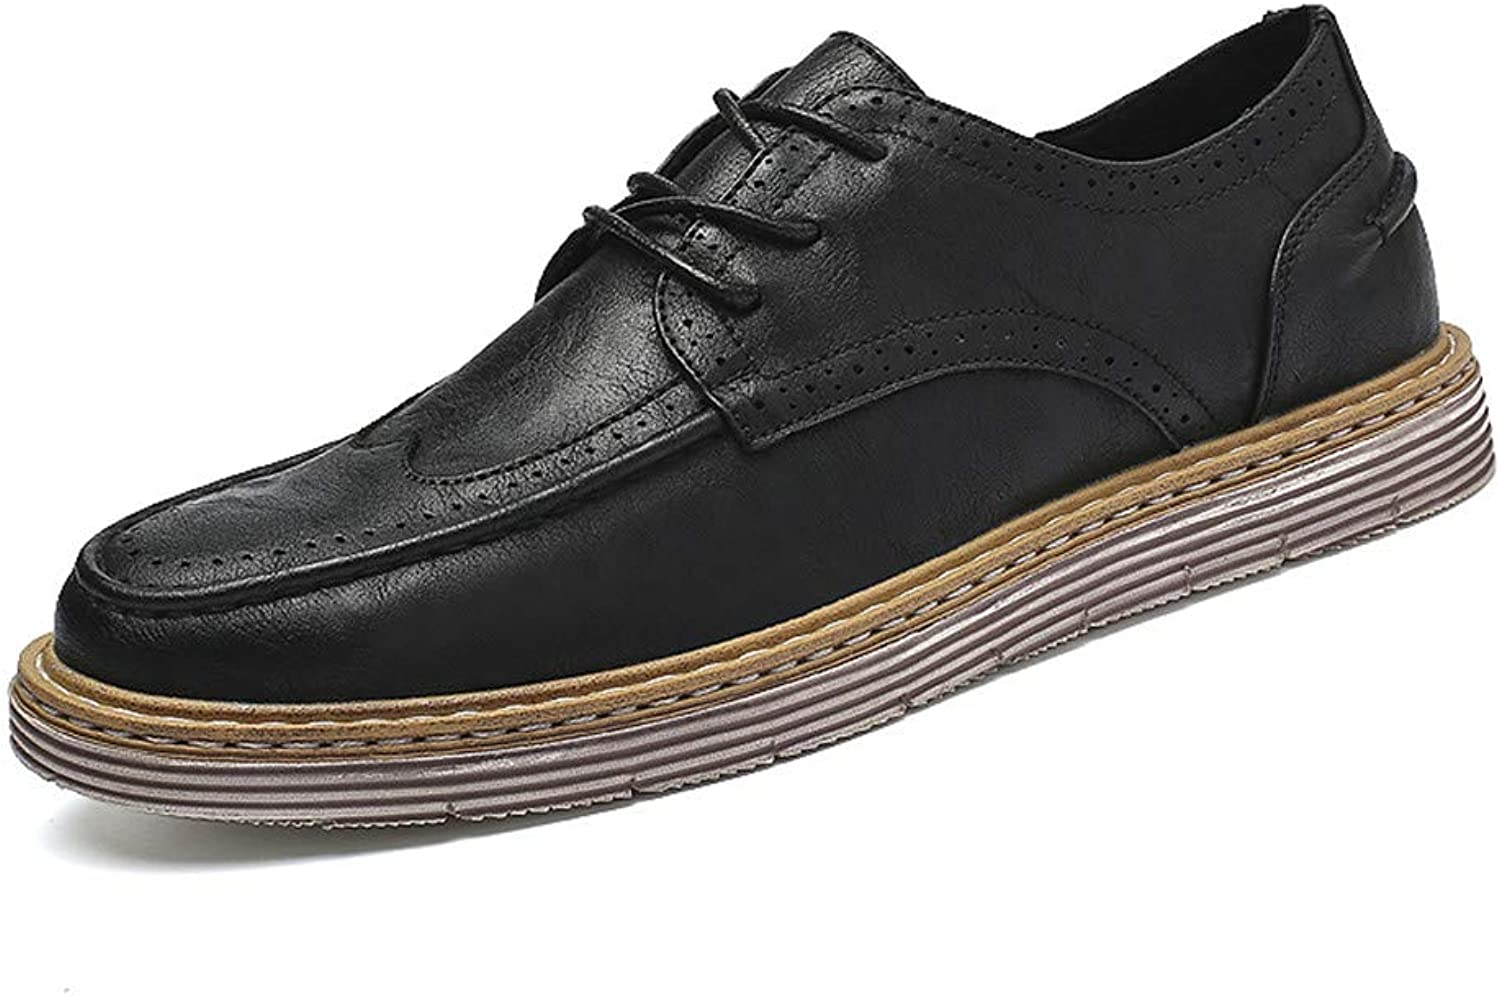 XIANGBAO-Personality Men's Classico Business Oxford Casual Fashion New Handcrafted Retro Simplicity Outsole Carved Brogue shoes